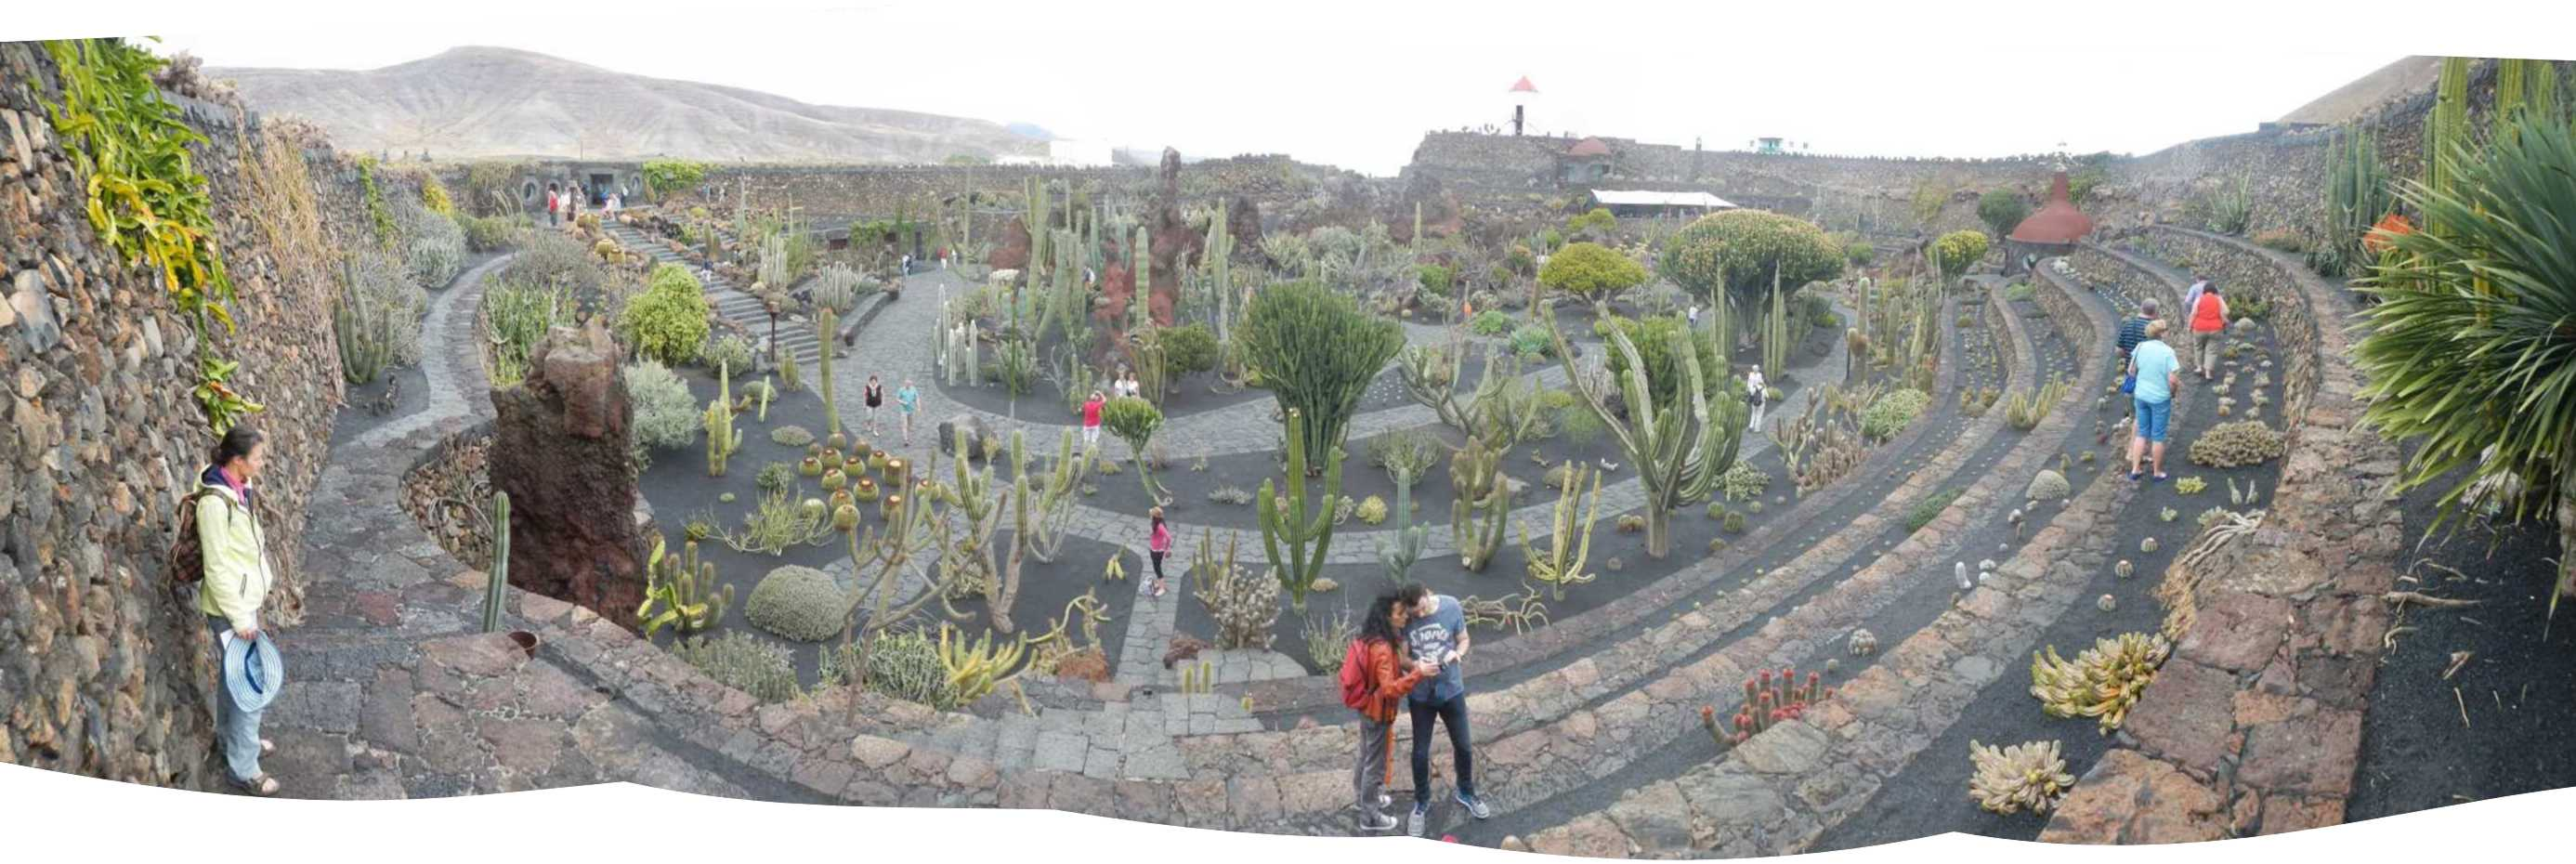 panoramic view of the cactus garden another csar manrique creation amphitheatre like with walls of volcanic stones